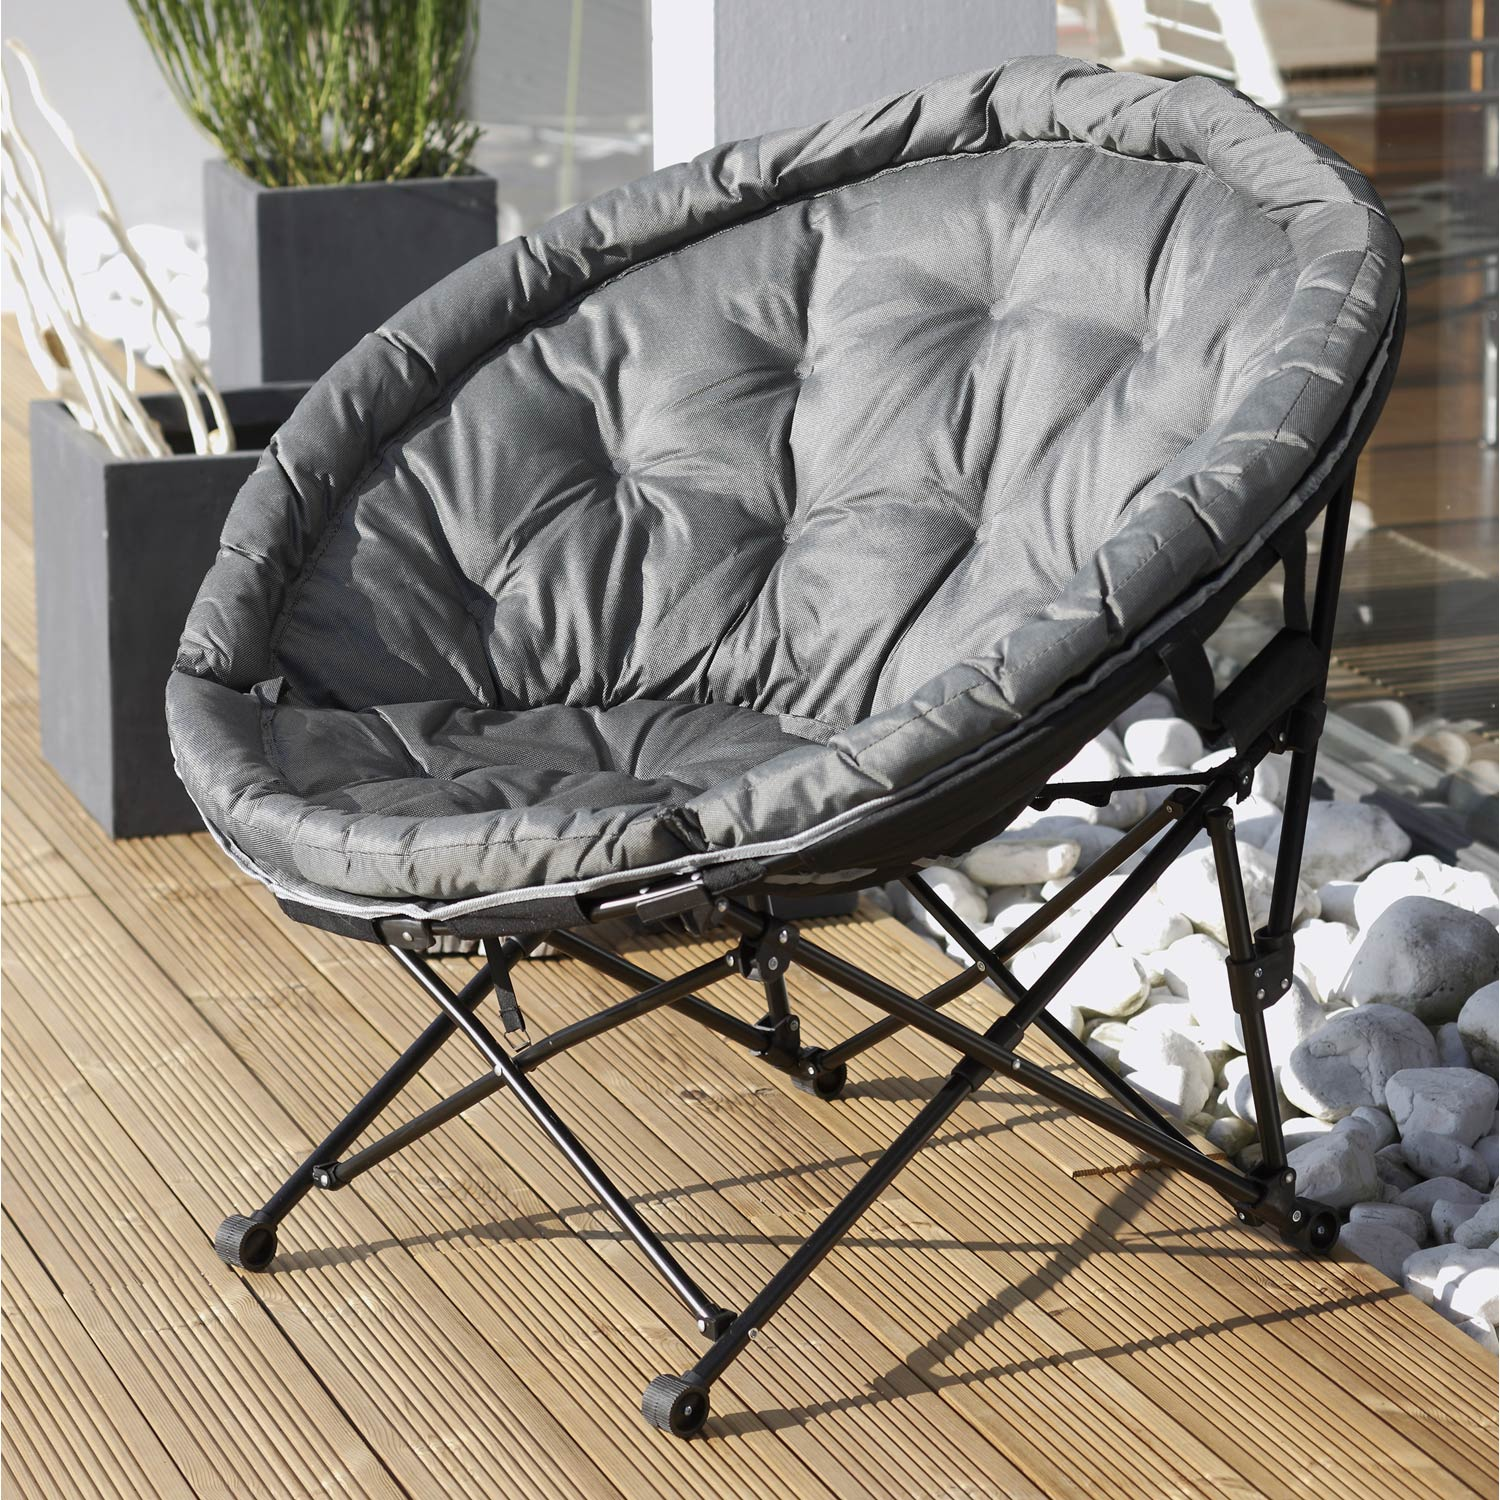 fauteuil de jardin en acier moon noir et gris leroy merlin. Black Bedroom Furniture Sets. Home Design Ideas